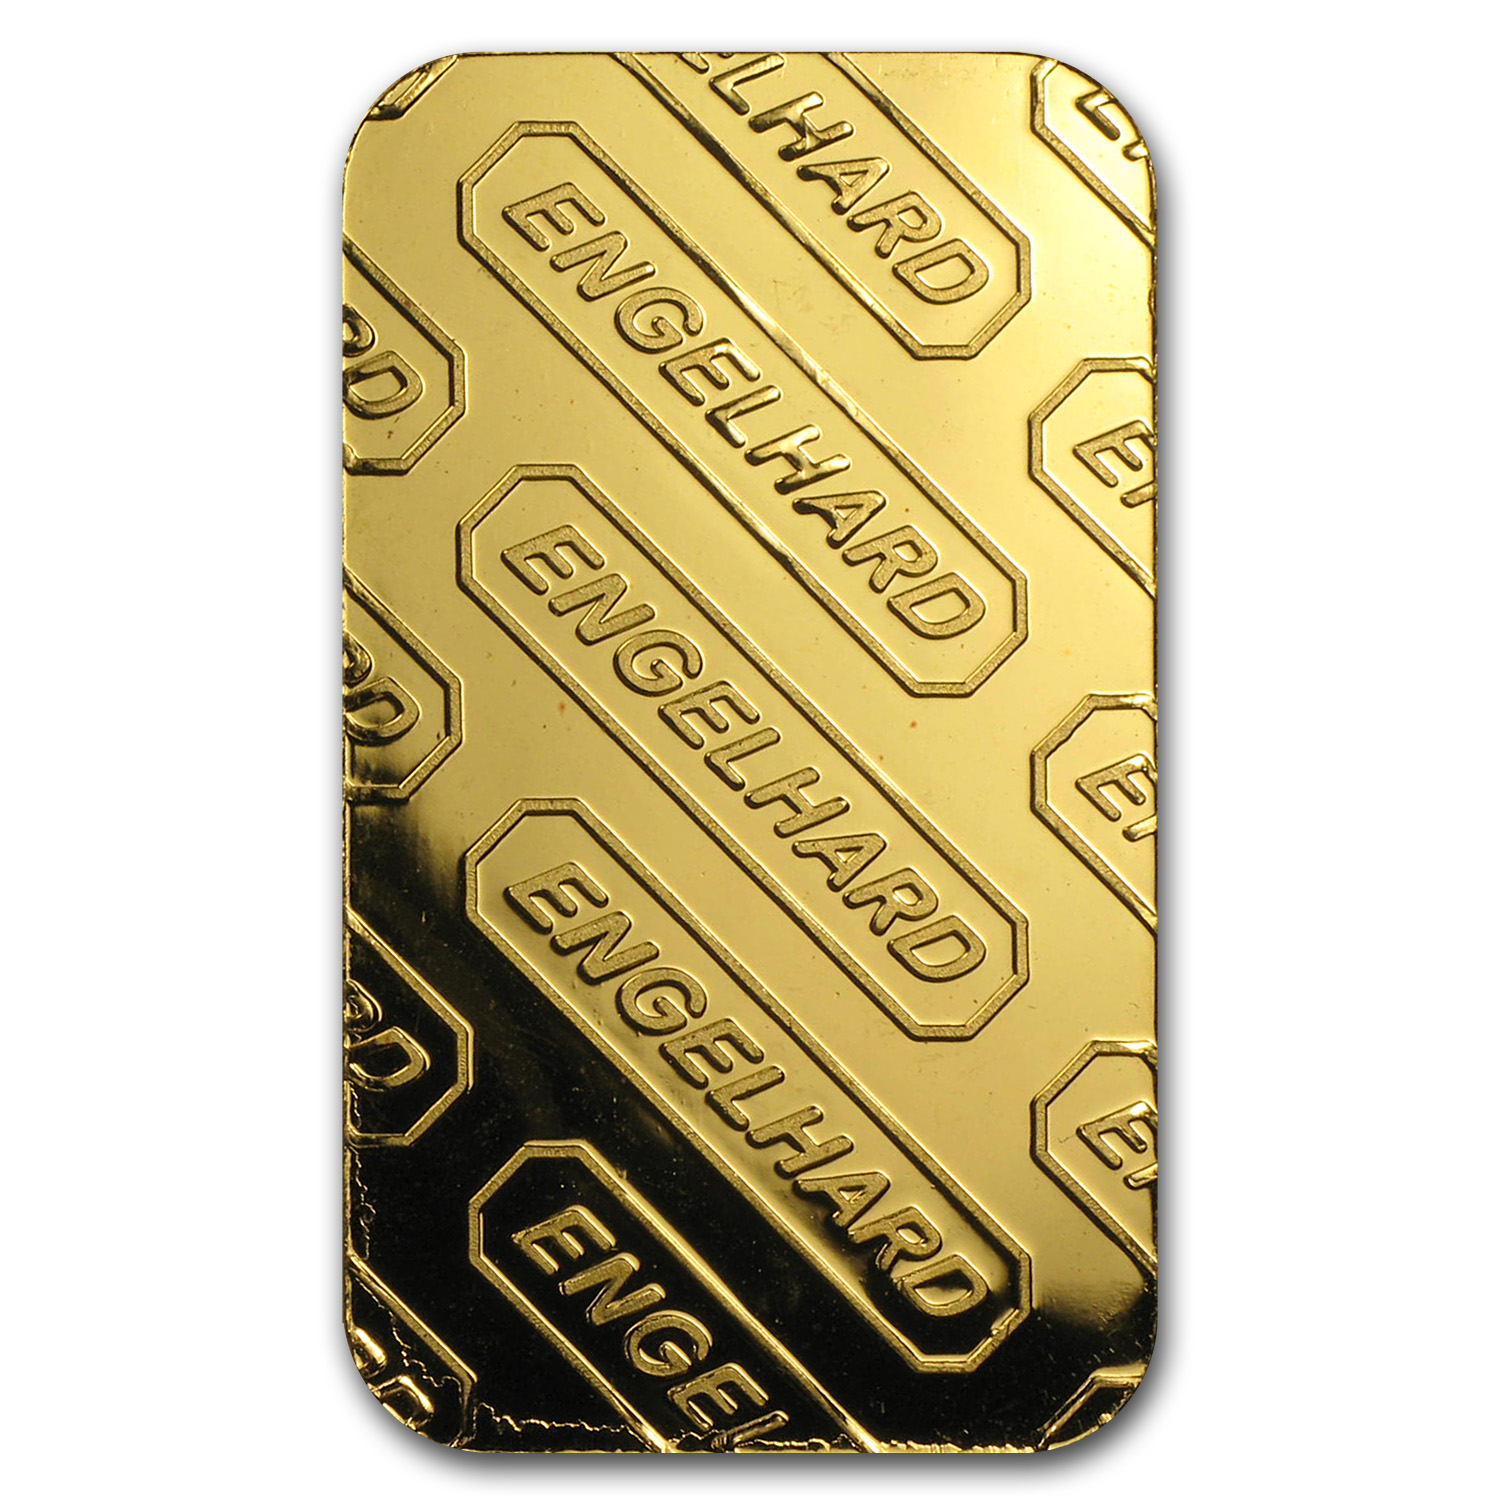 1 oz Gold Bars - Engelhard ('E' logo, w/o Assay)